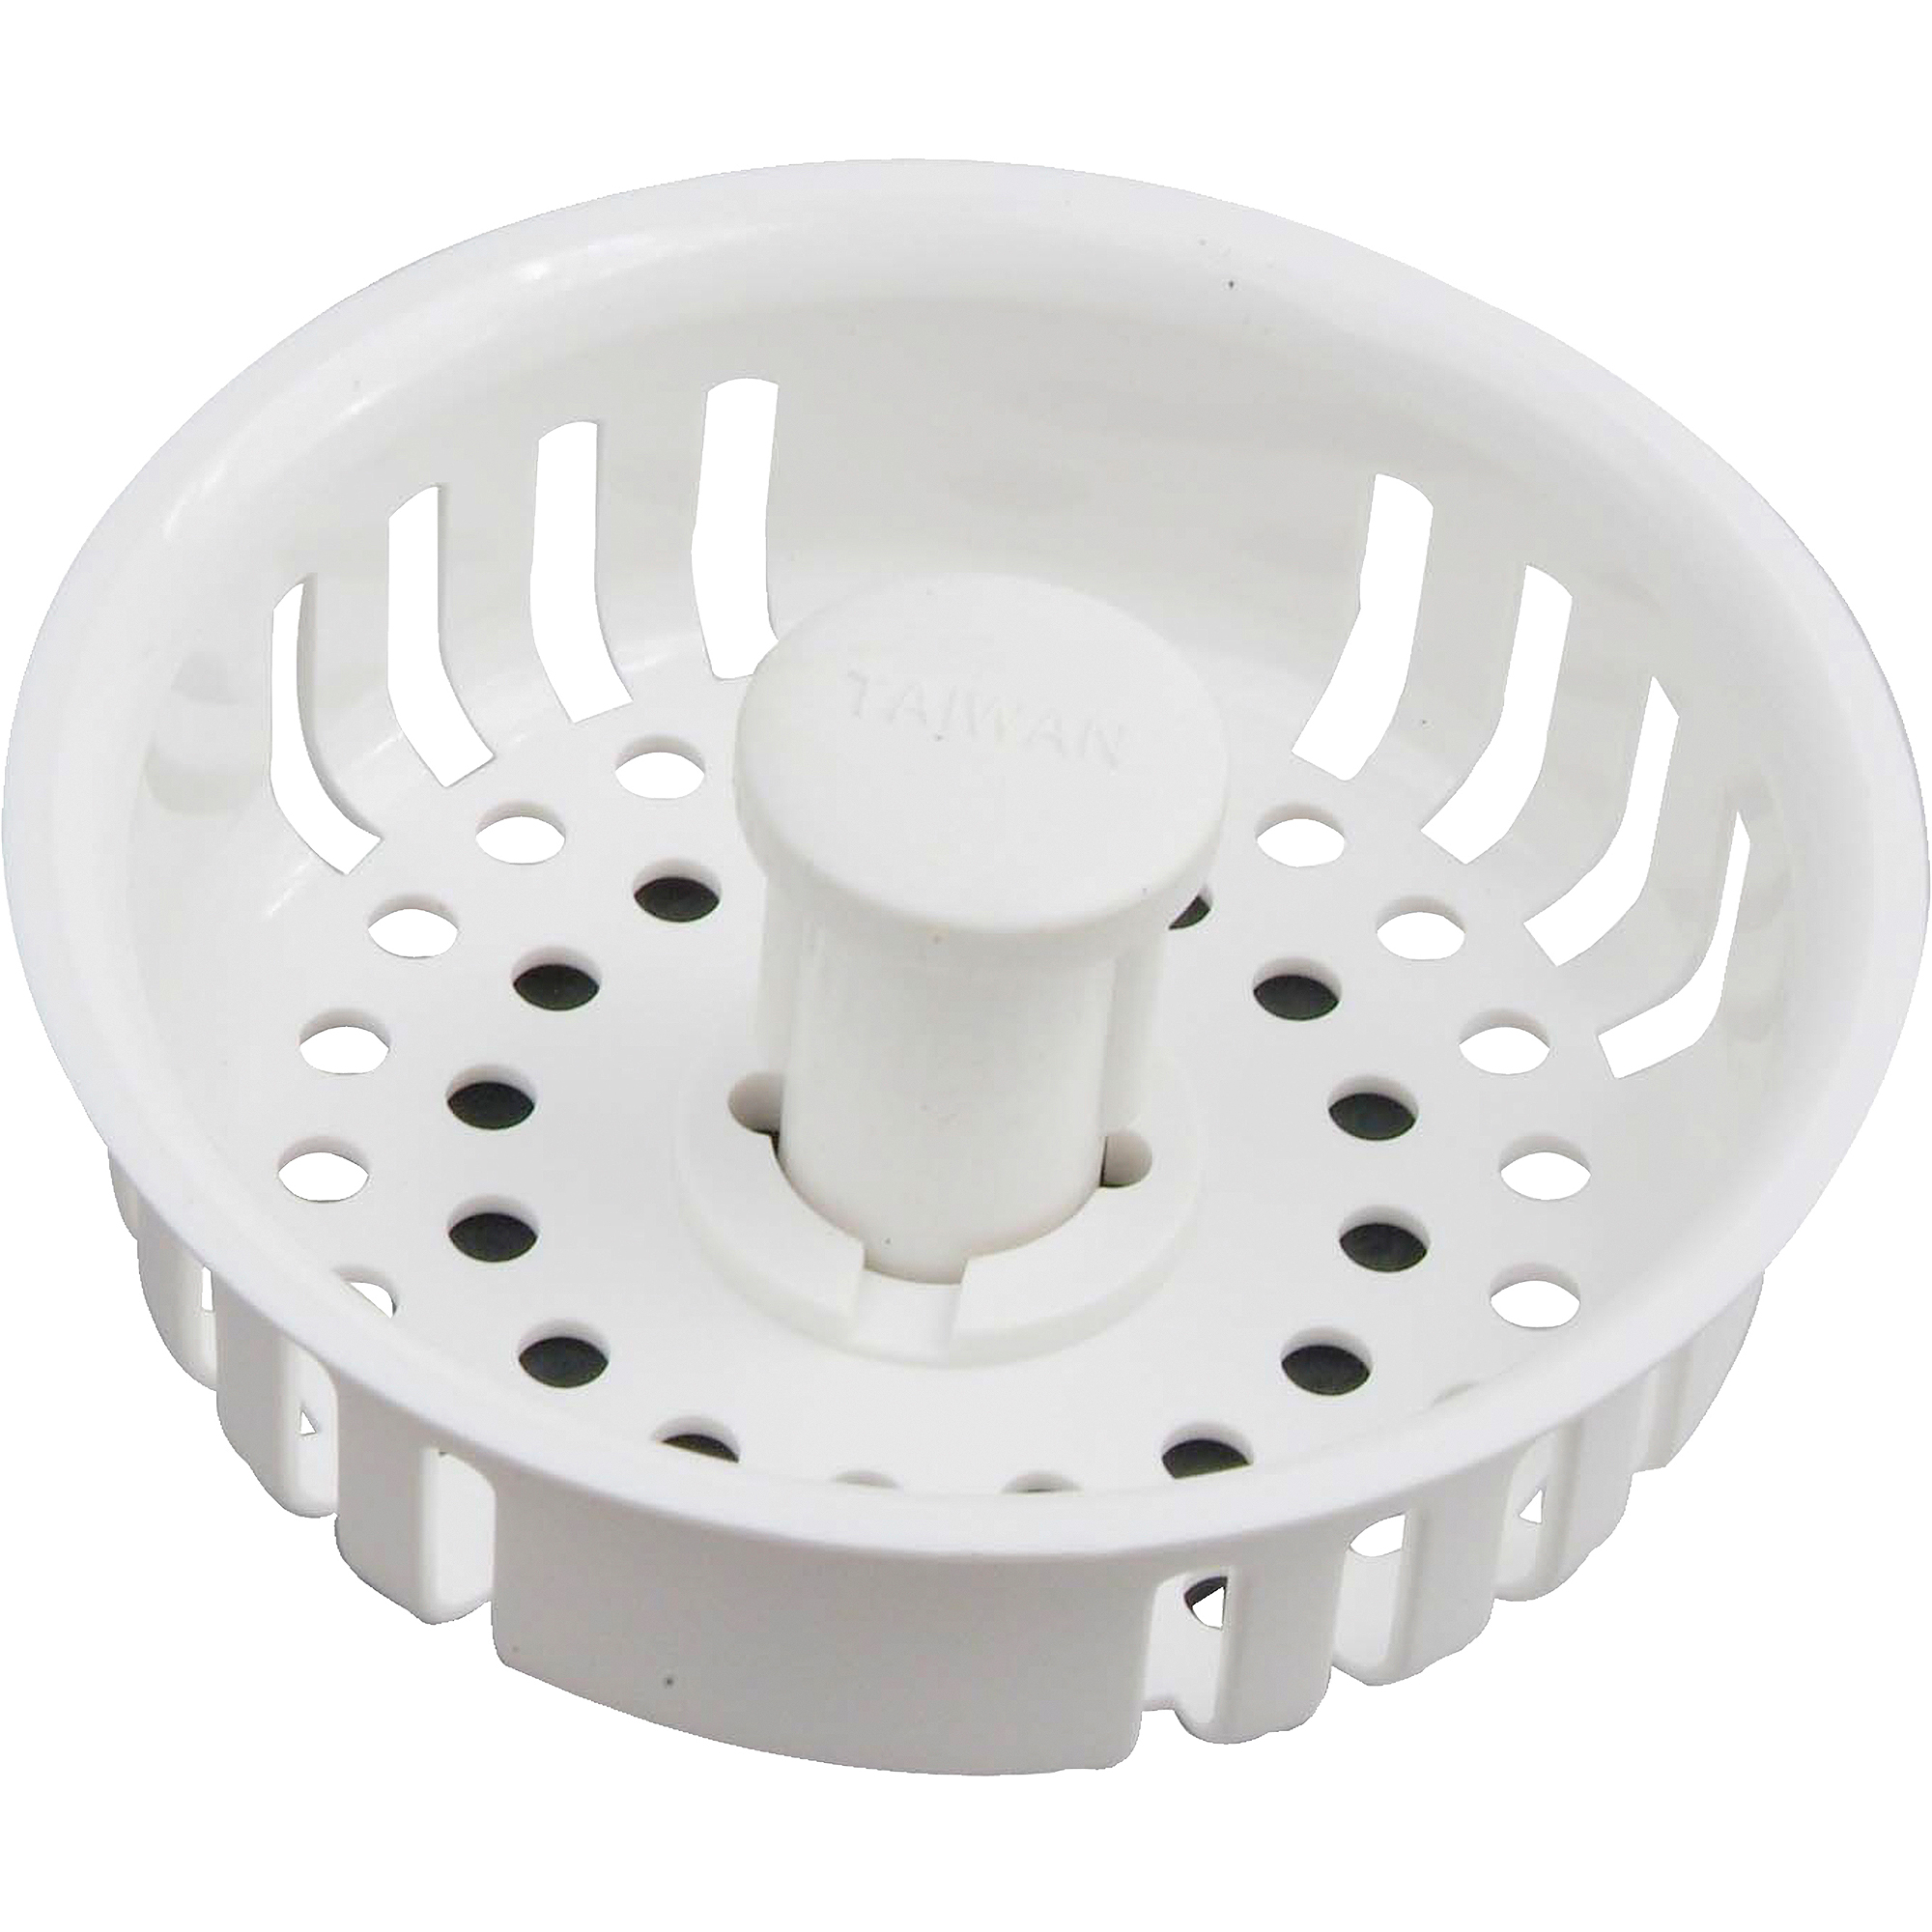 Peerless Plastic Strainer With Stopper, White